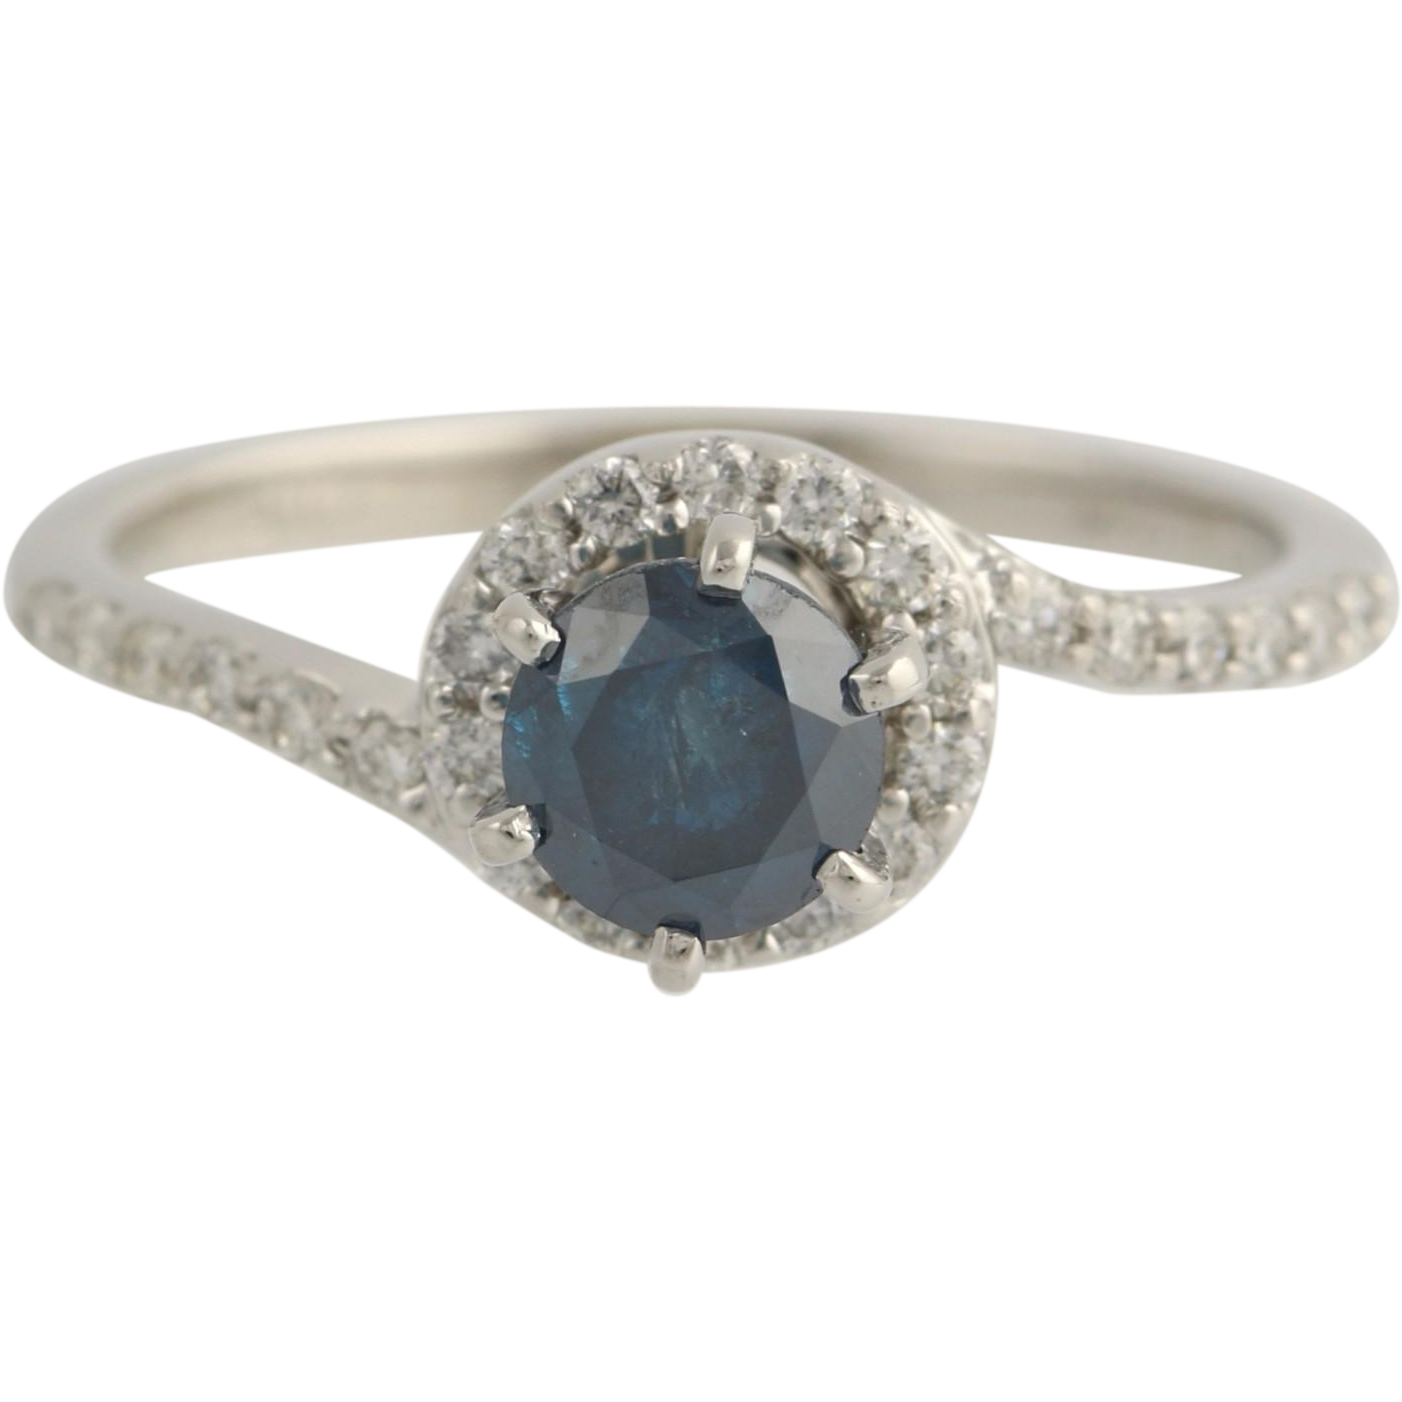 Blue Diamond Engagement Ring Bypass Halo White Accents - 14k White Gold